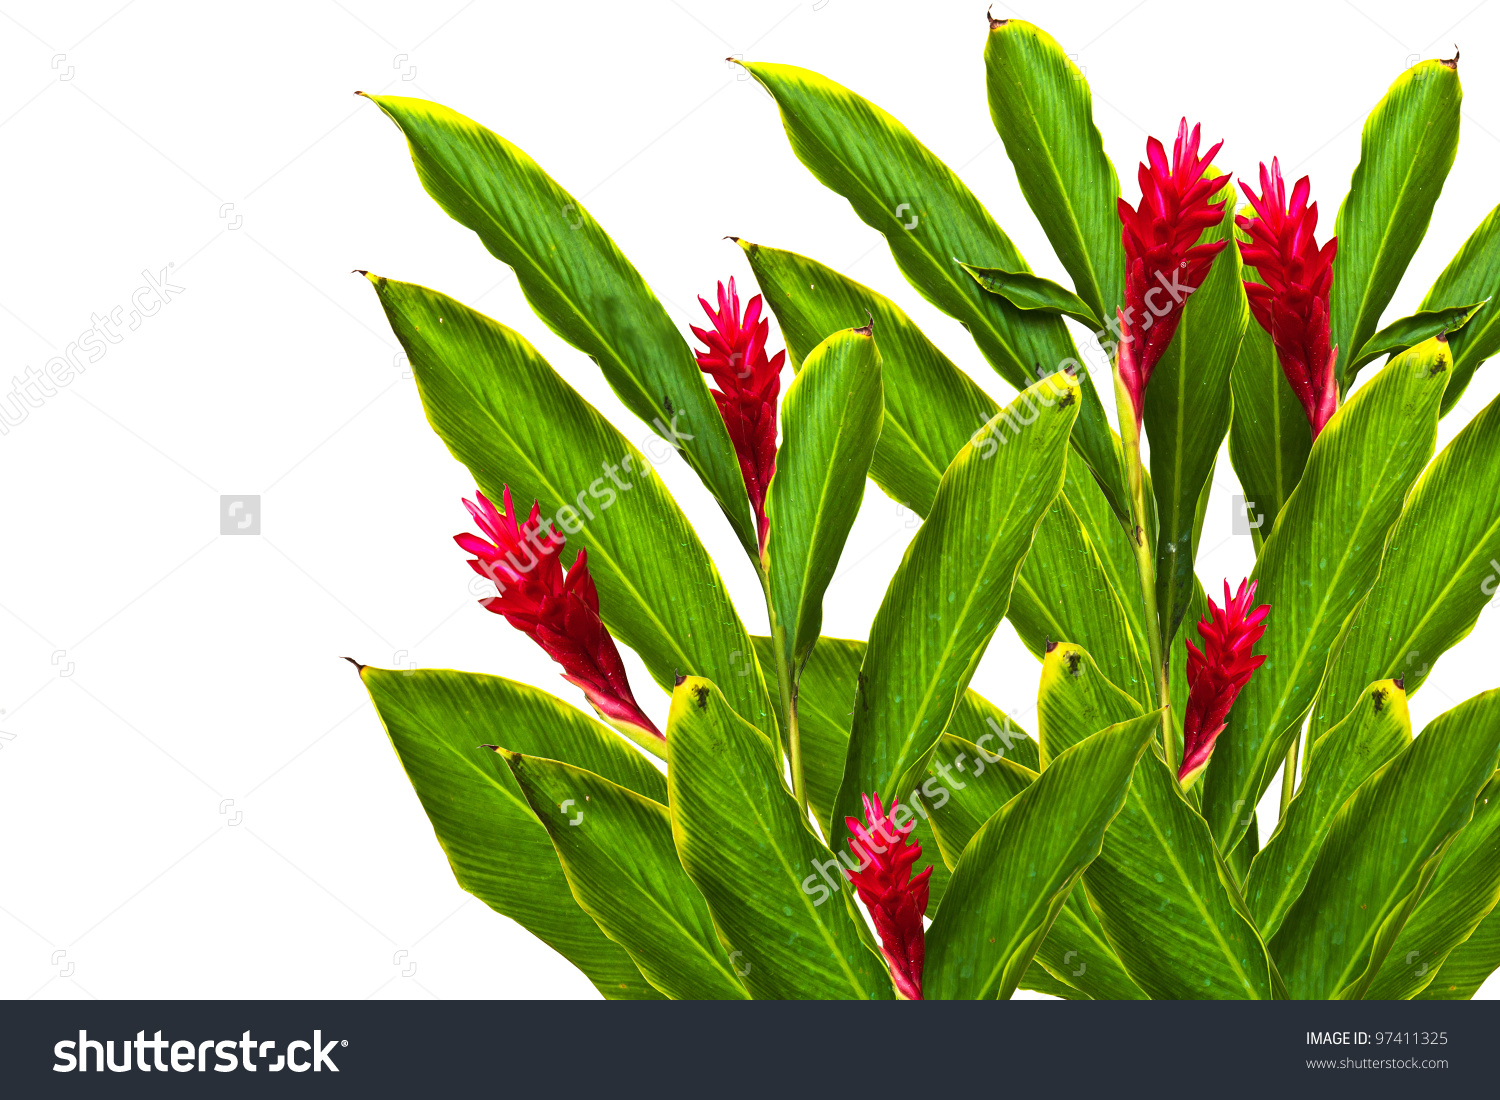 Tropical Red Gingeralpinia Purpurata Flowerthis Image Stock Photo.